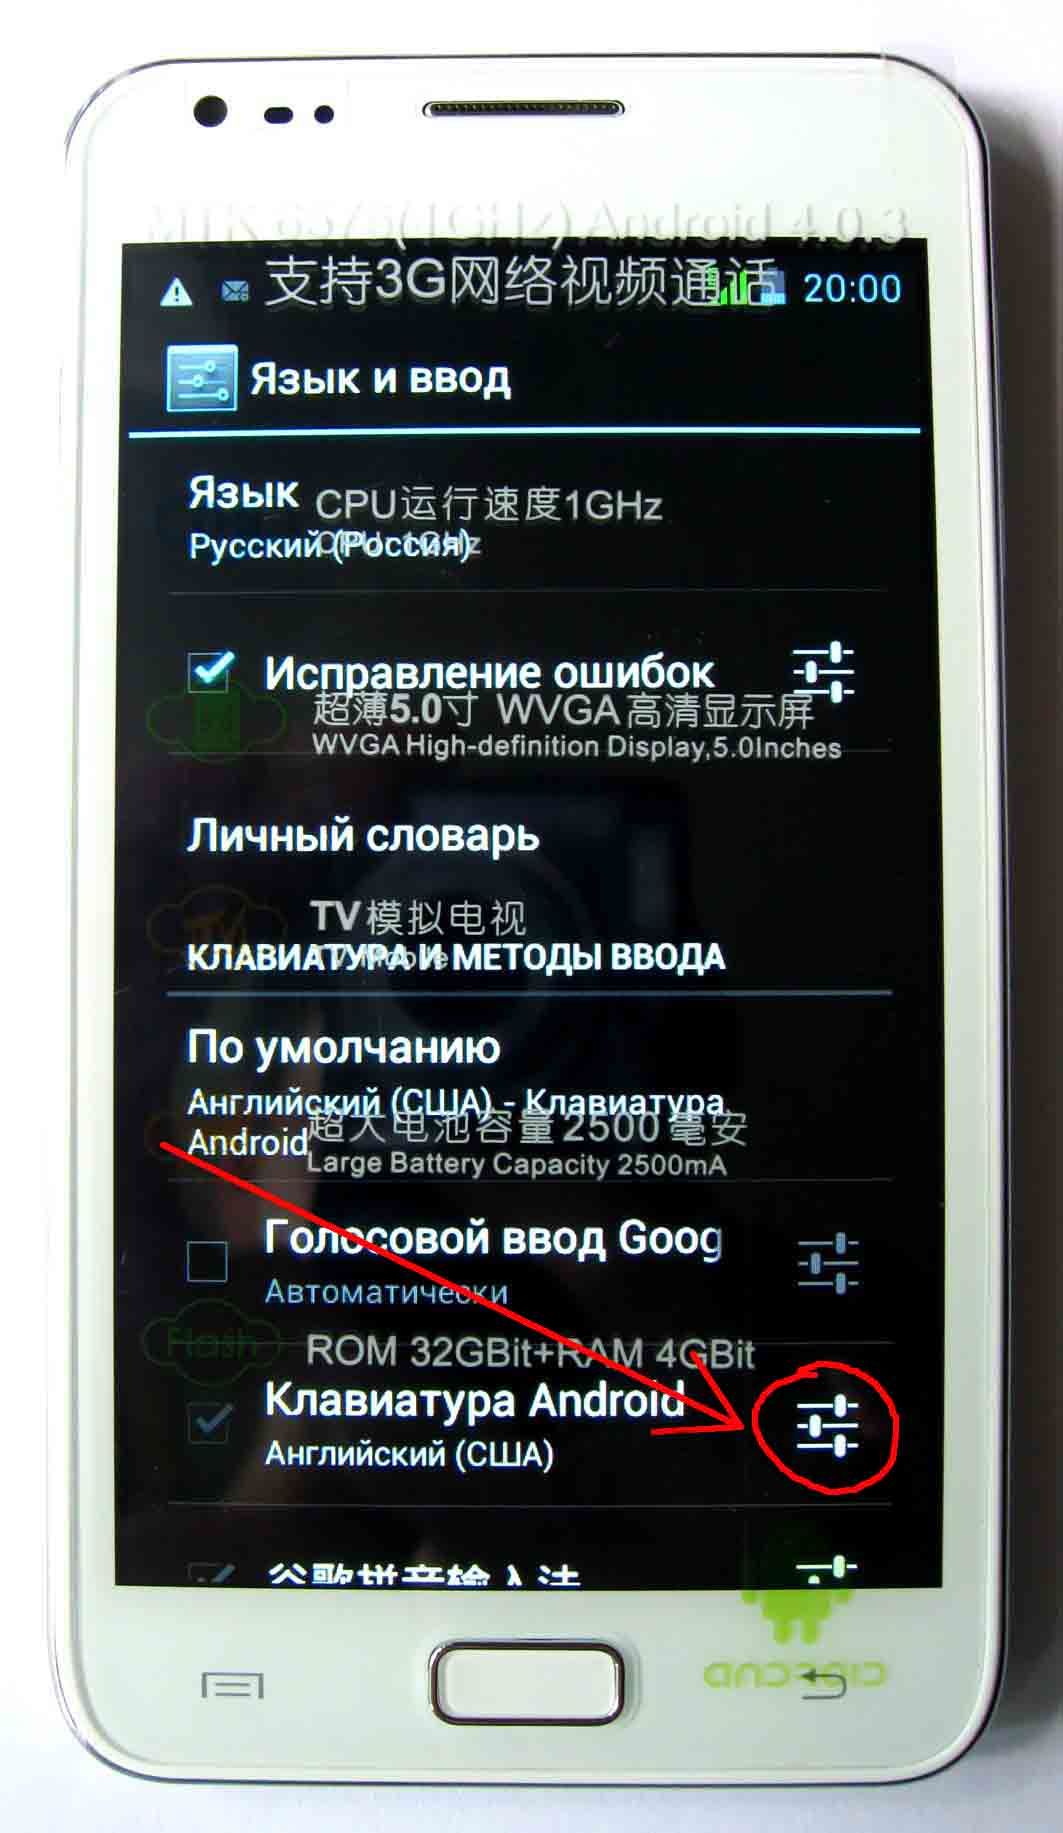 Samsung Galaxy Note i9220 - клавиатура Android